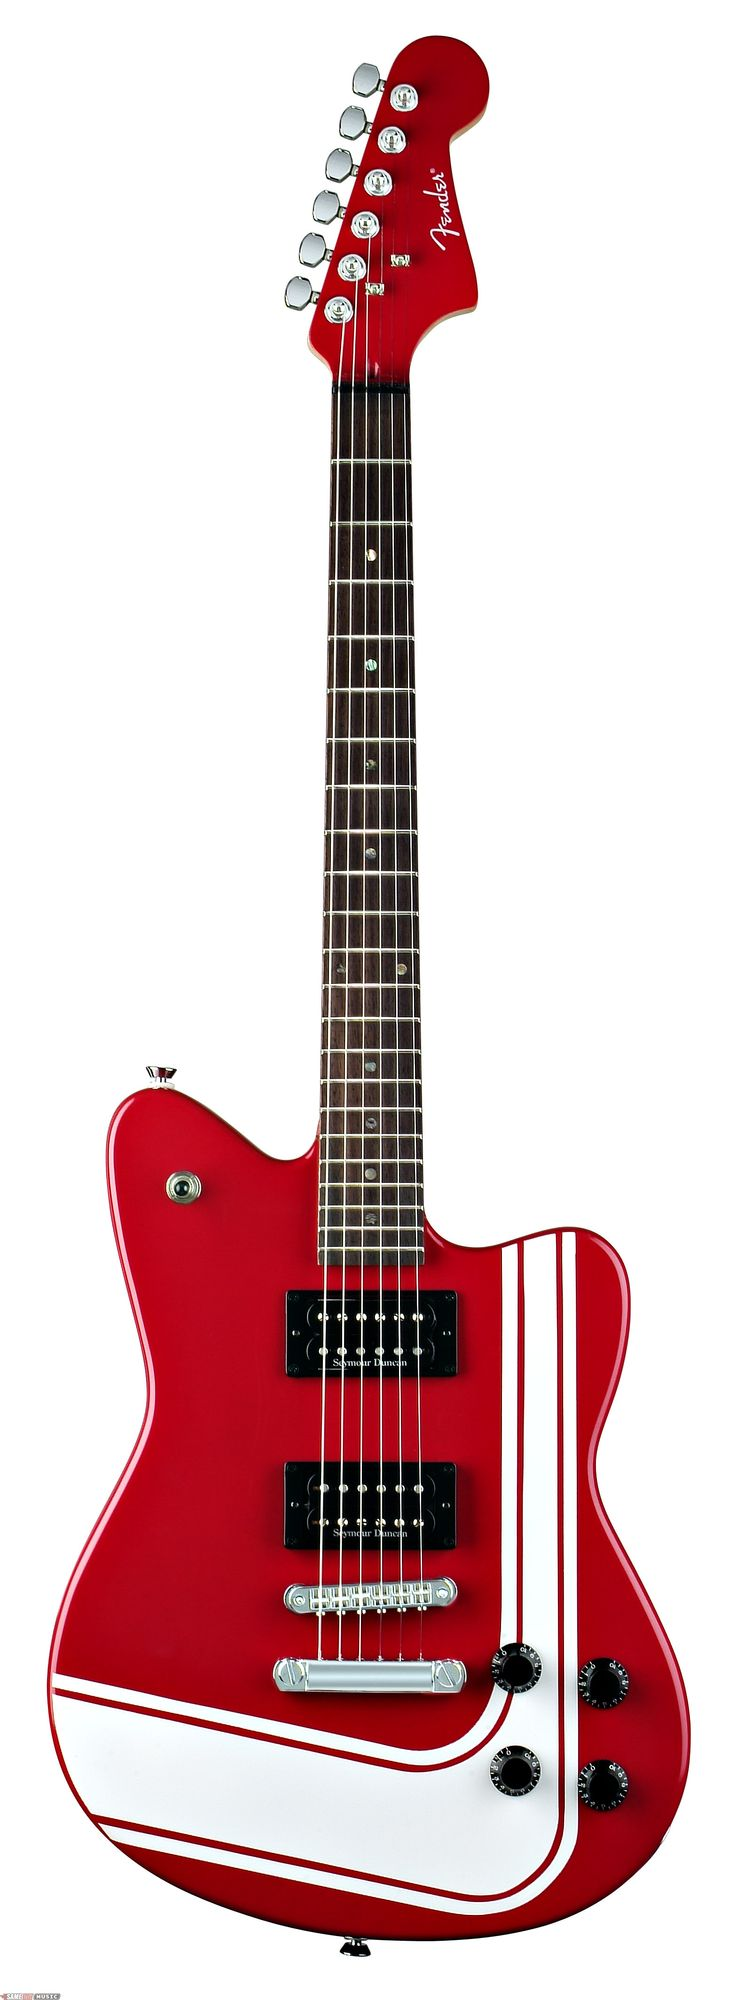 Number 9. Fender Toronado (but mine will be blue)